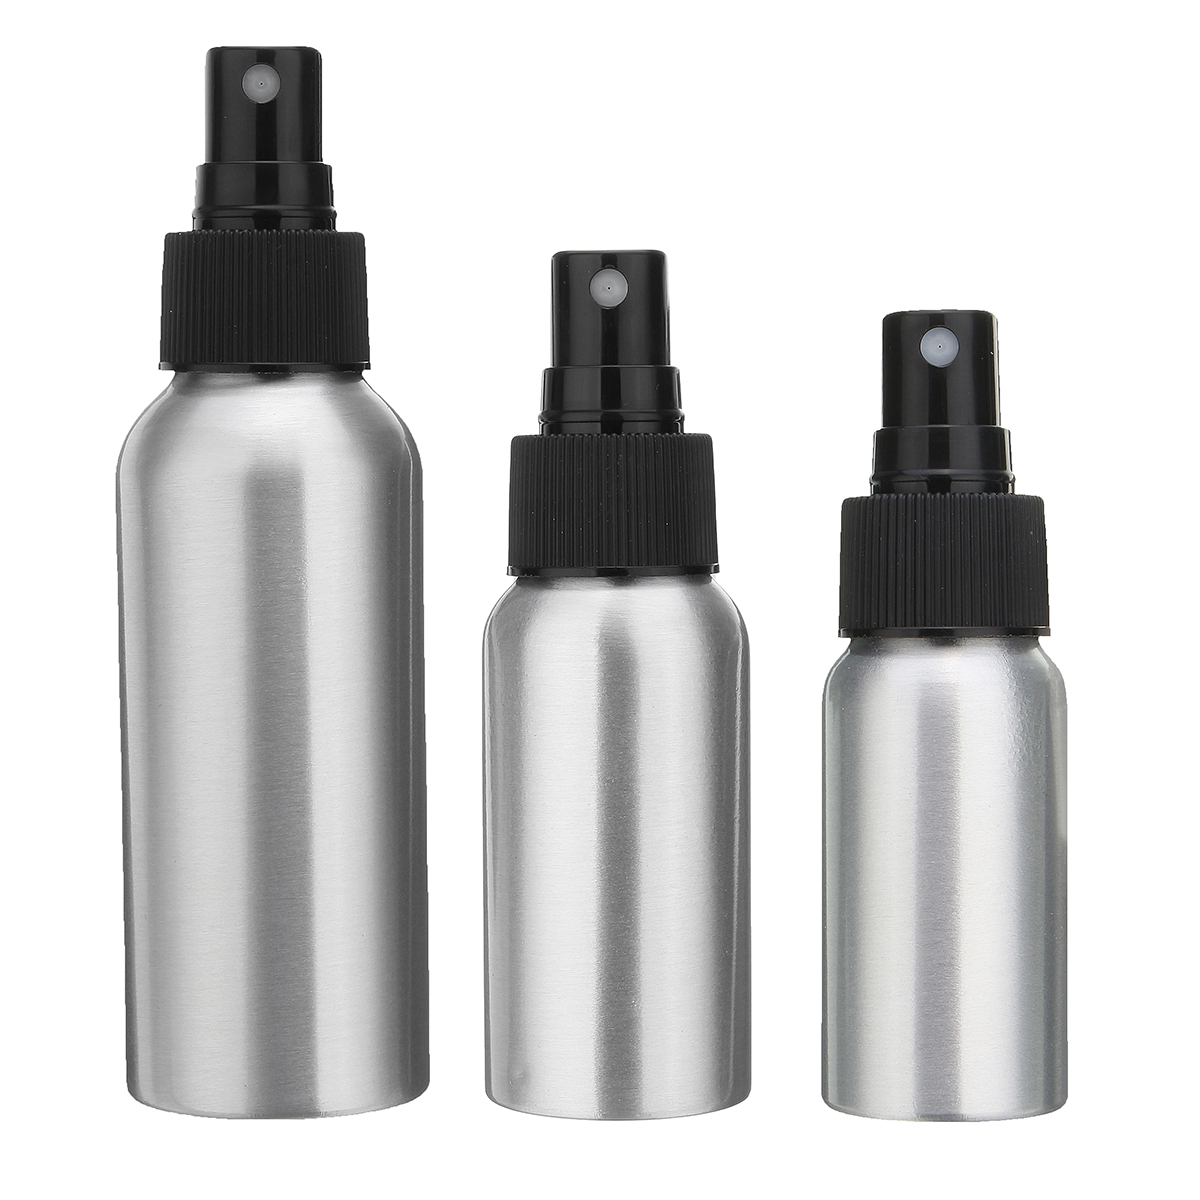 30/50/100ml aluminumbottle Aluminum Mist Spray Bottle Pump Dispenser Perfume Atomizer Atomiser